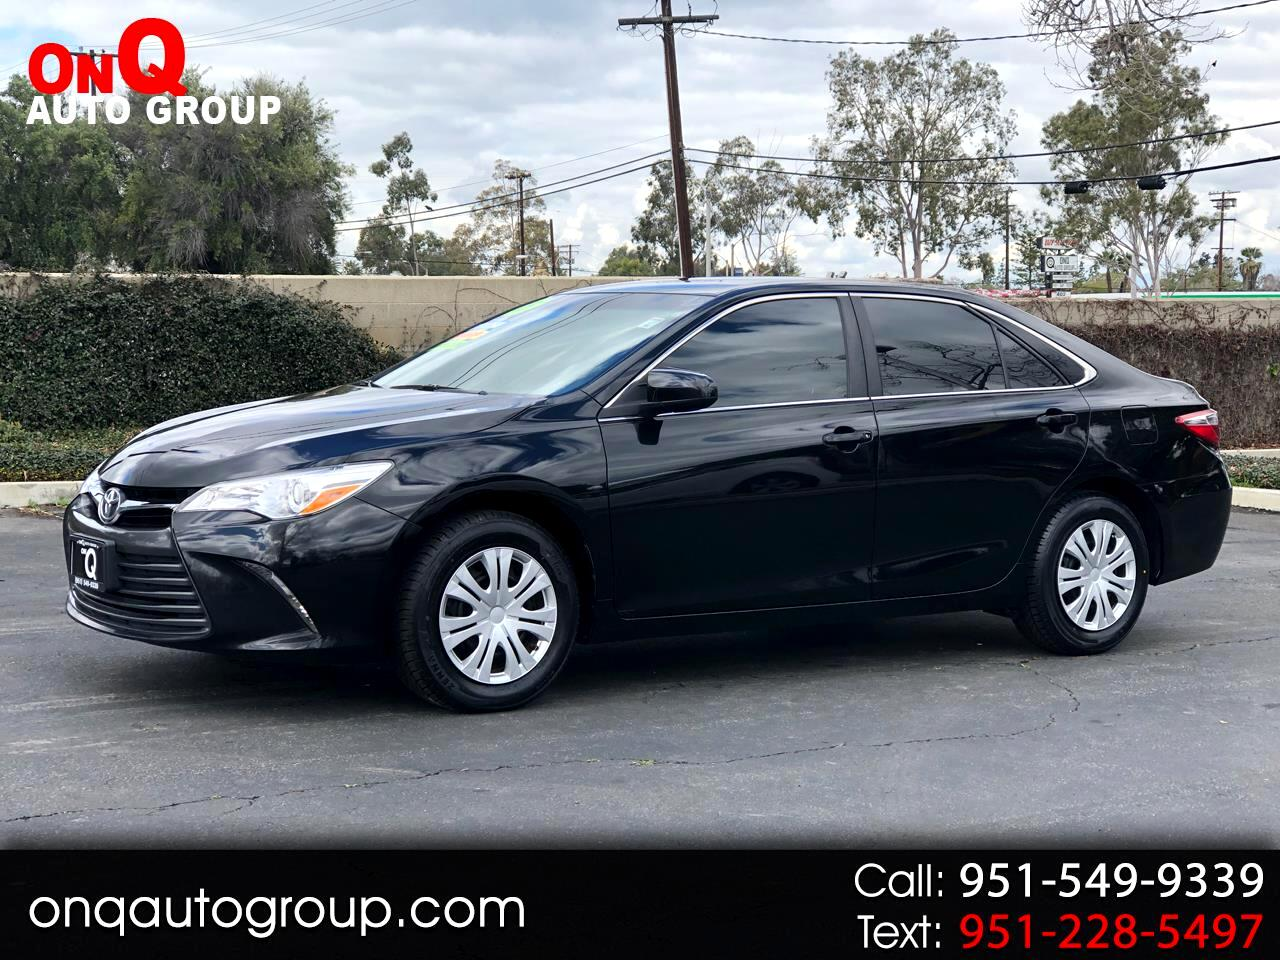 2015 Toyota Camry 4dr Sdn I4 Man LE (Natl)